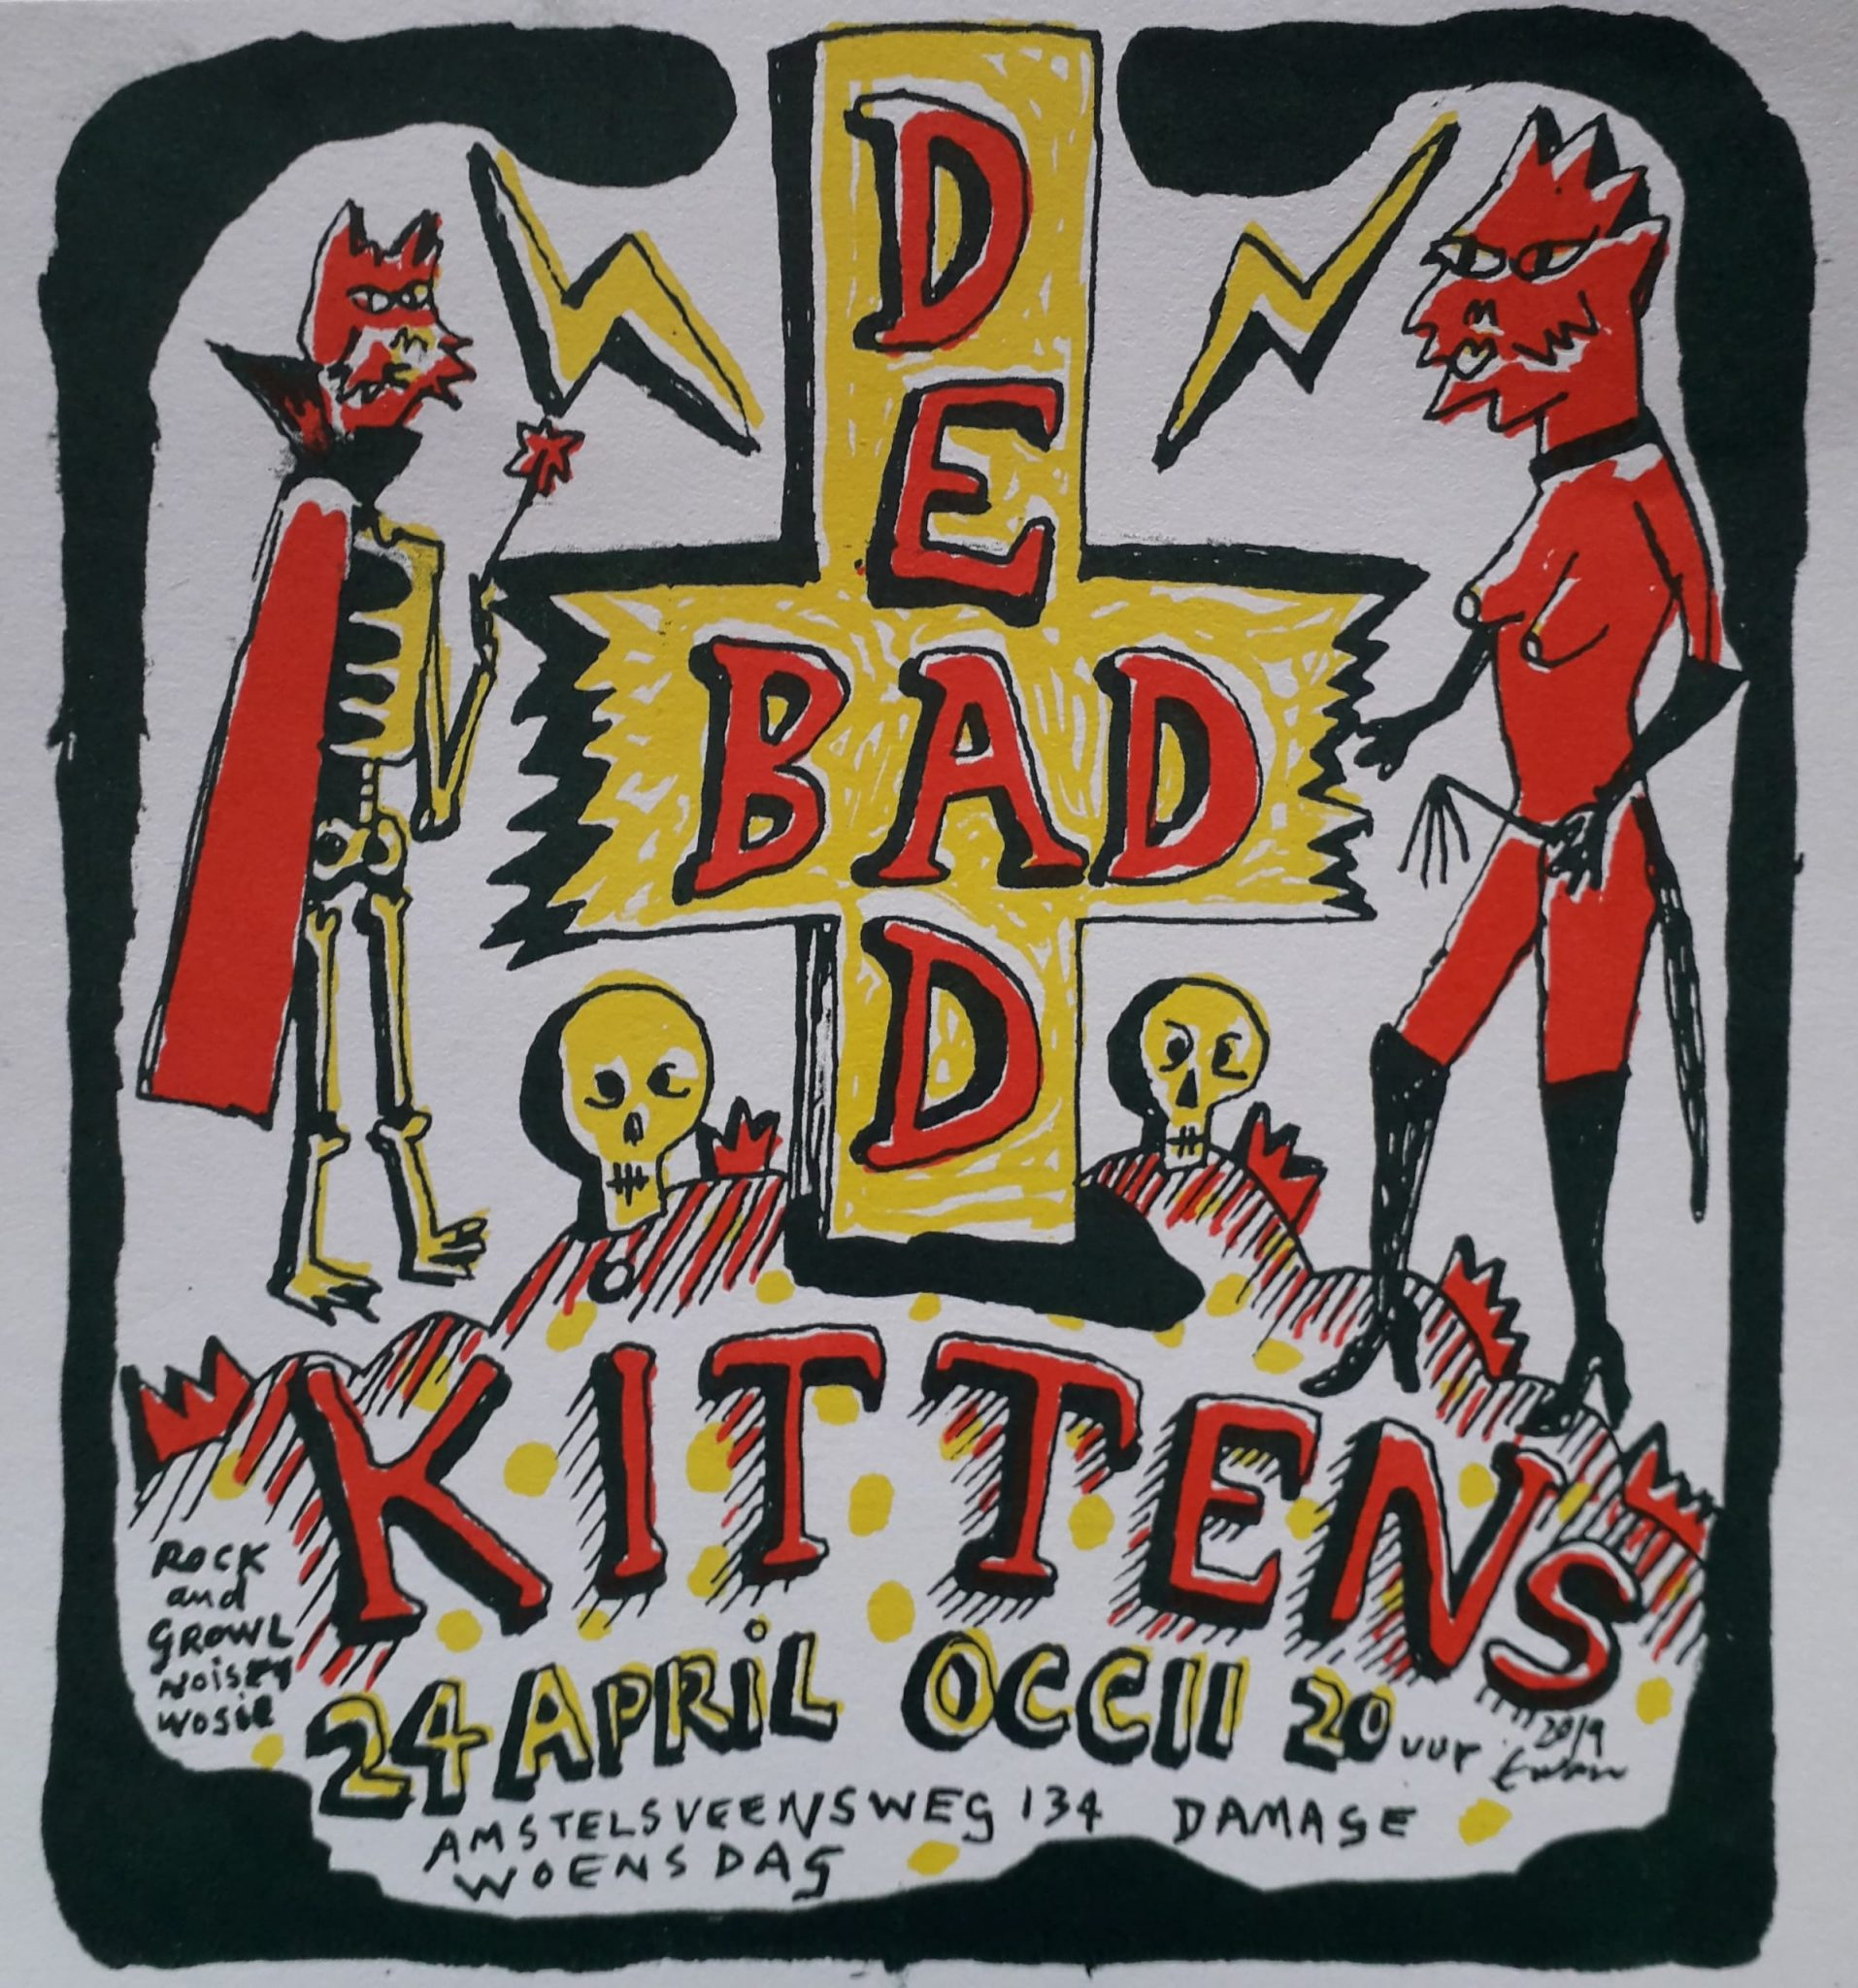 DEAD KITTENS (Berlin, DE) + BAD KITTEN